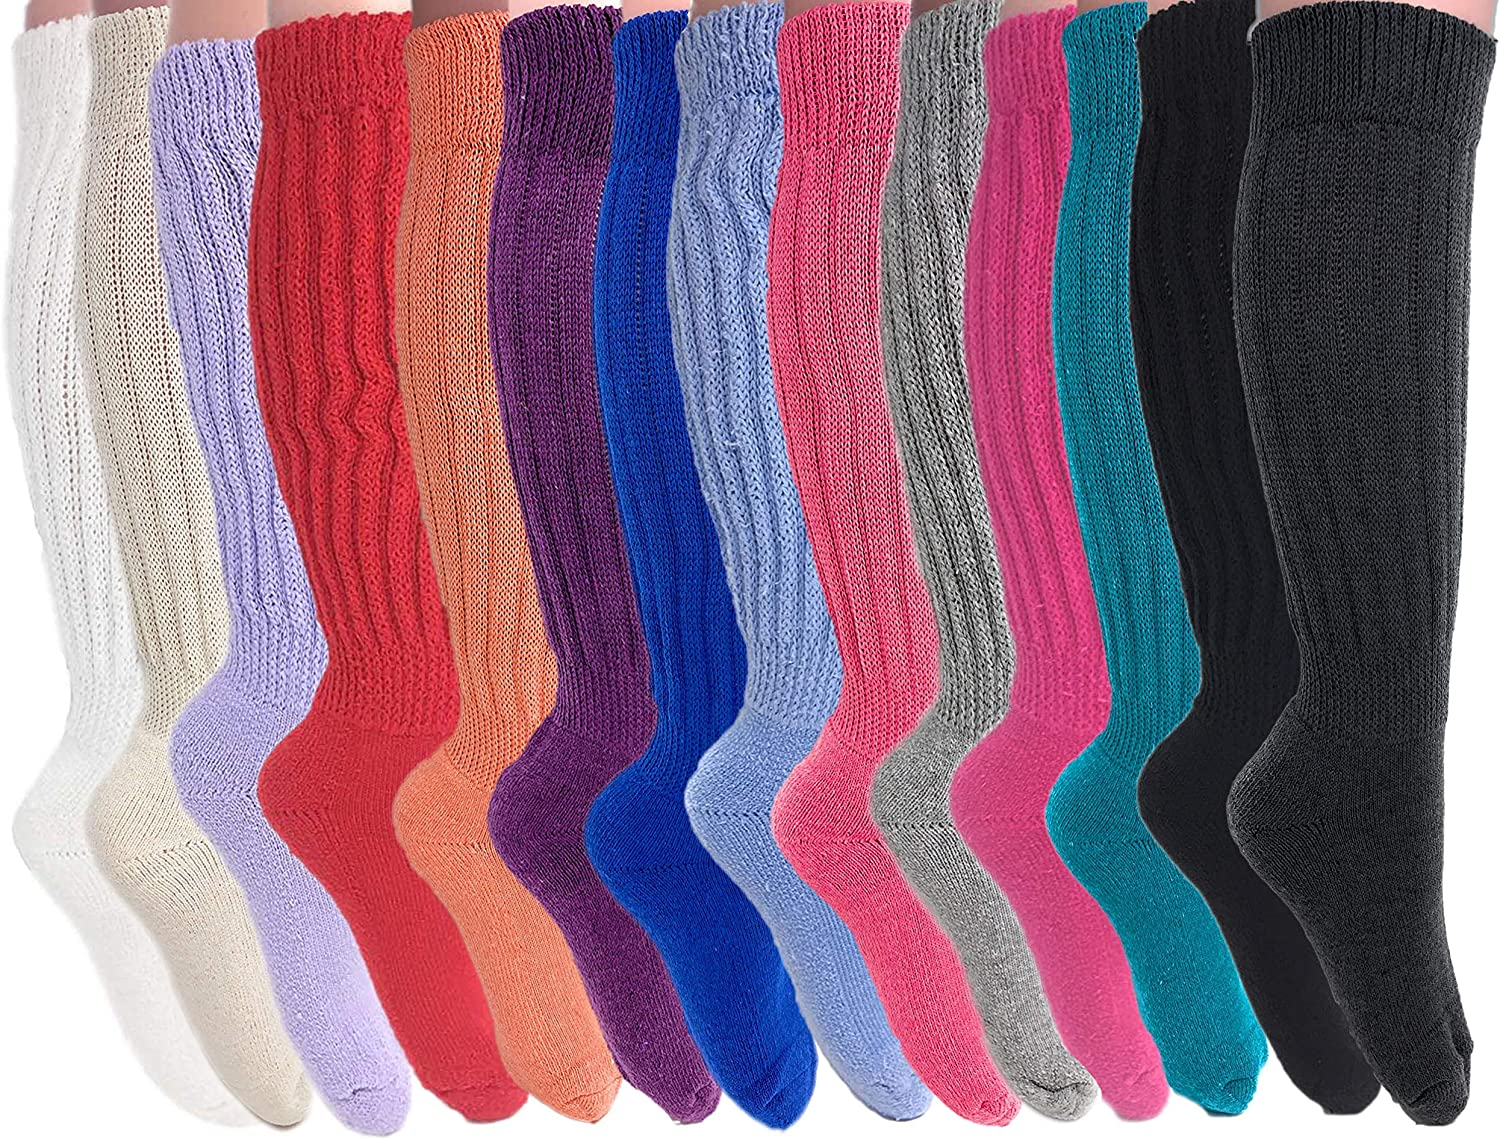 Slouch Socks for Women Cotton 80s Boot Socks 14 PAIRS Size 9 to 11